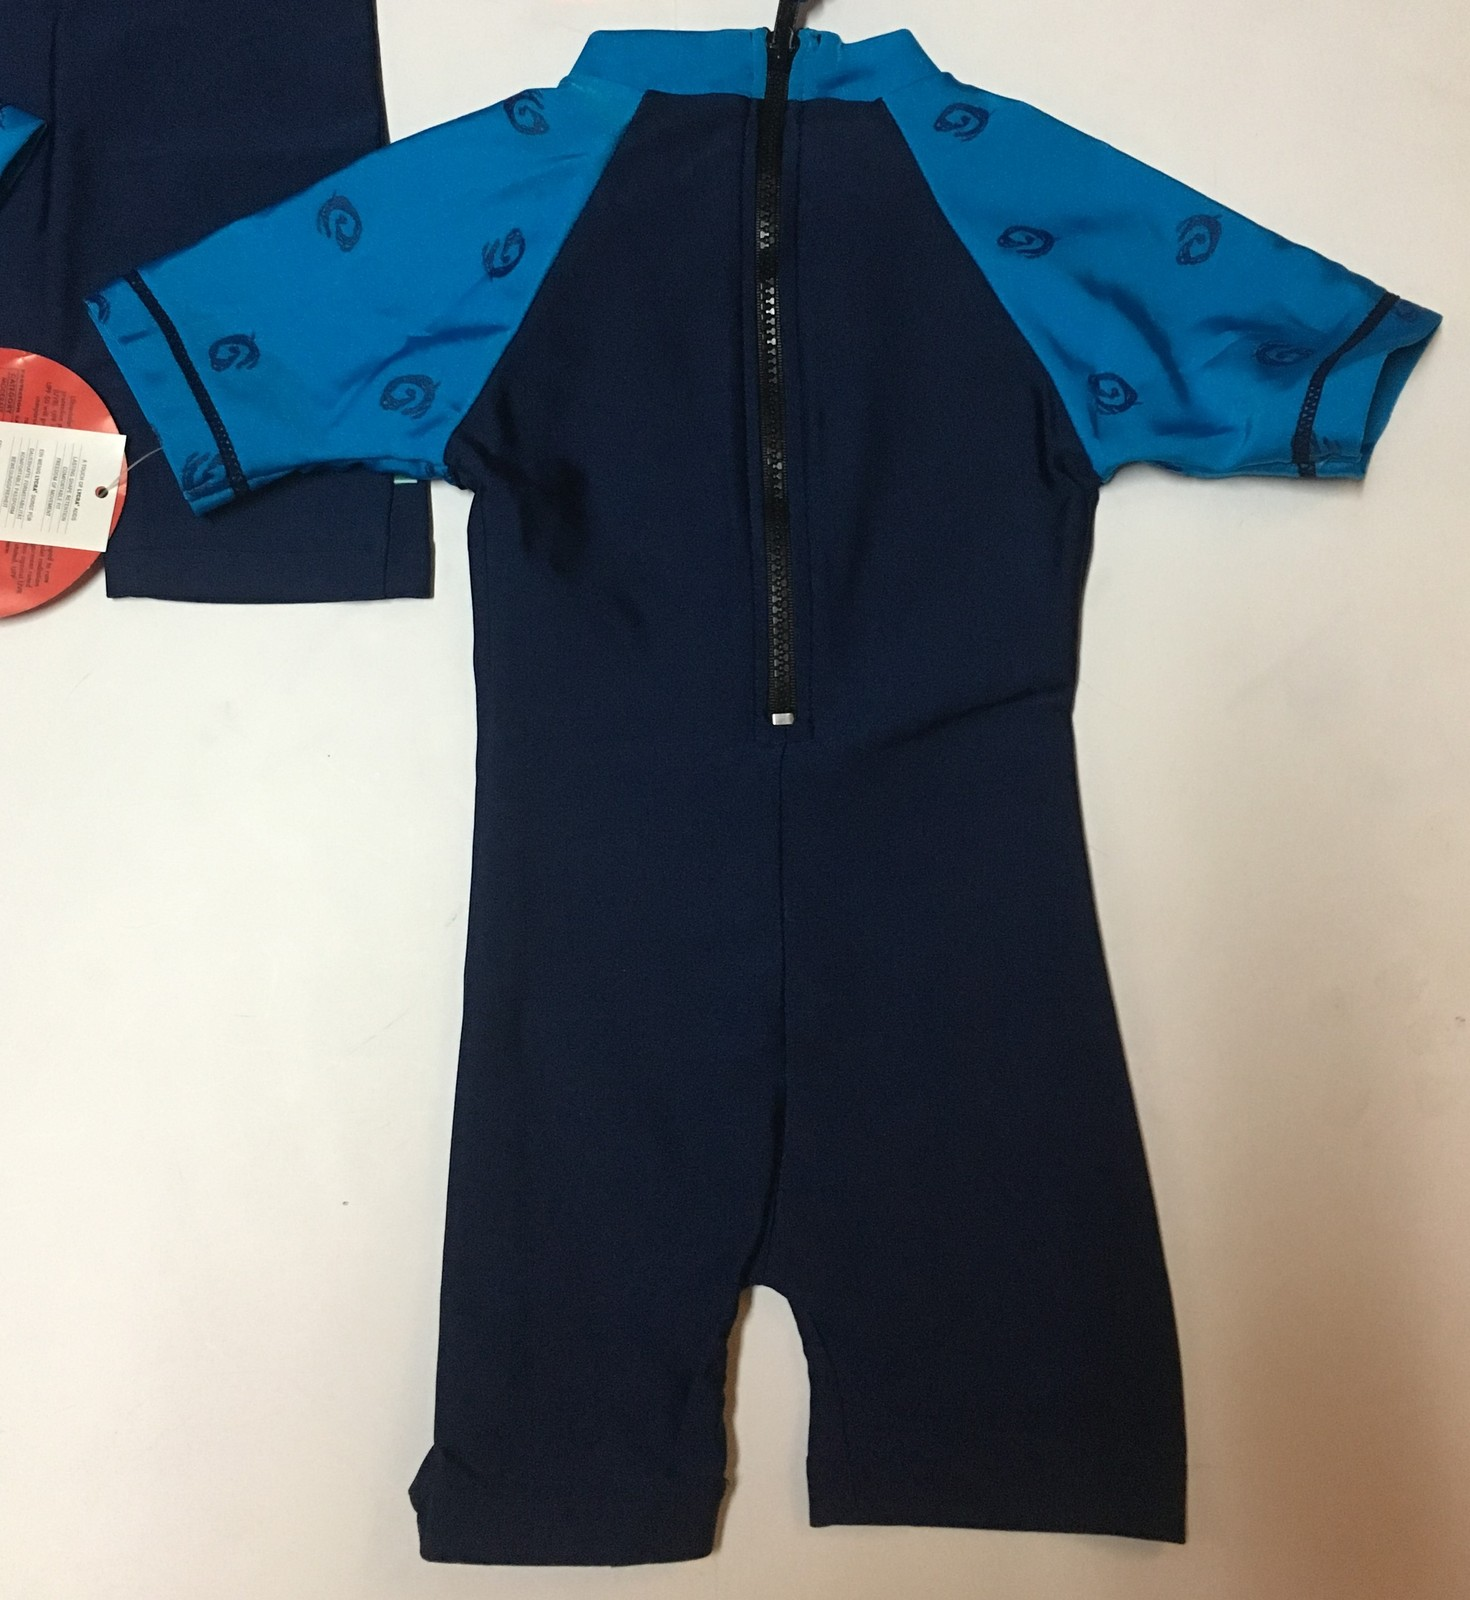 Infant One Piece Swimsuit Mad Dogs Lycra 50 UPF 6-12 Months Variety Features